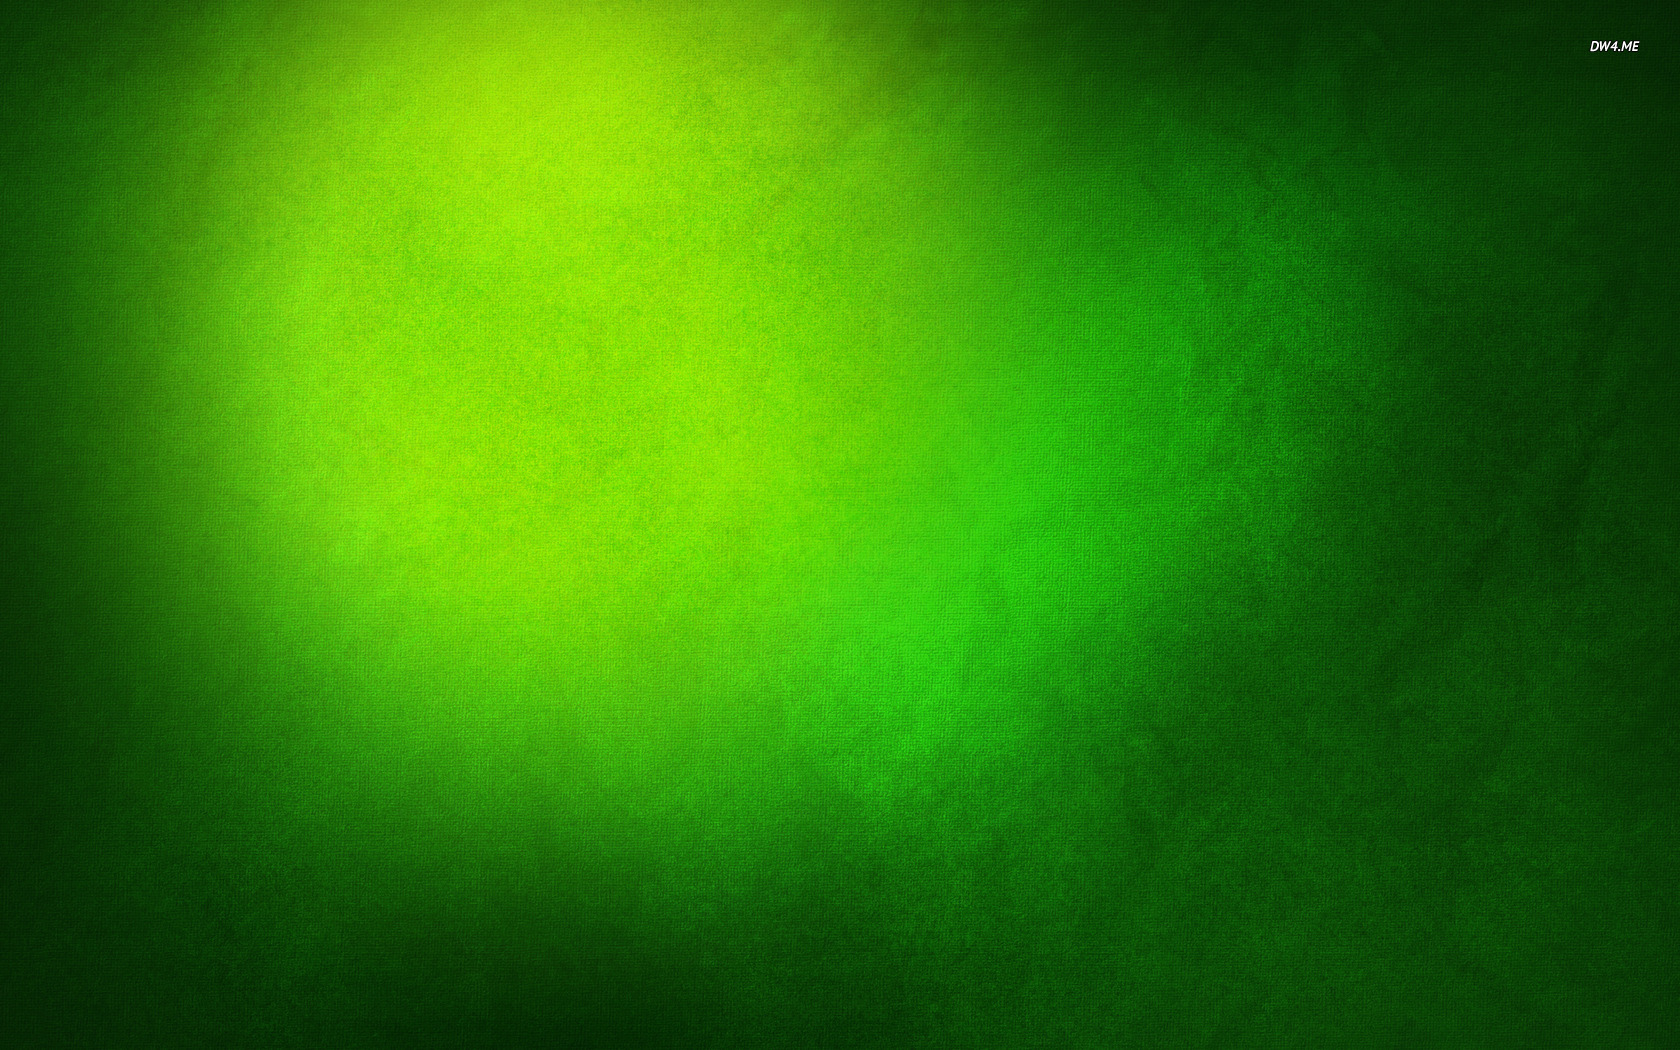 Green and yellow paper wallpaper   Abstract wallpapers   785 1680x1050